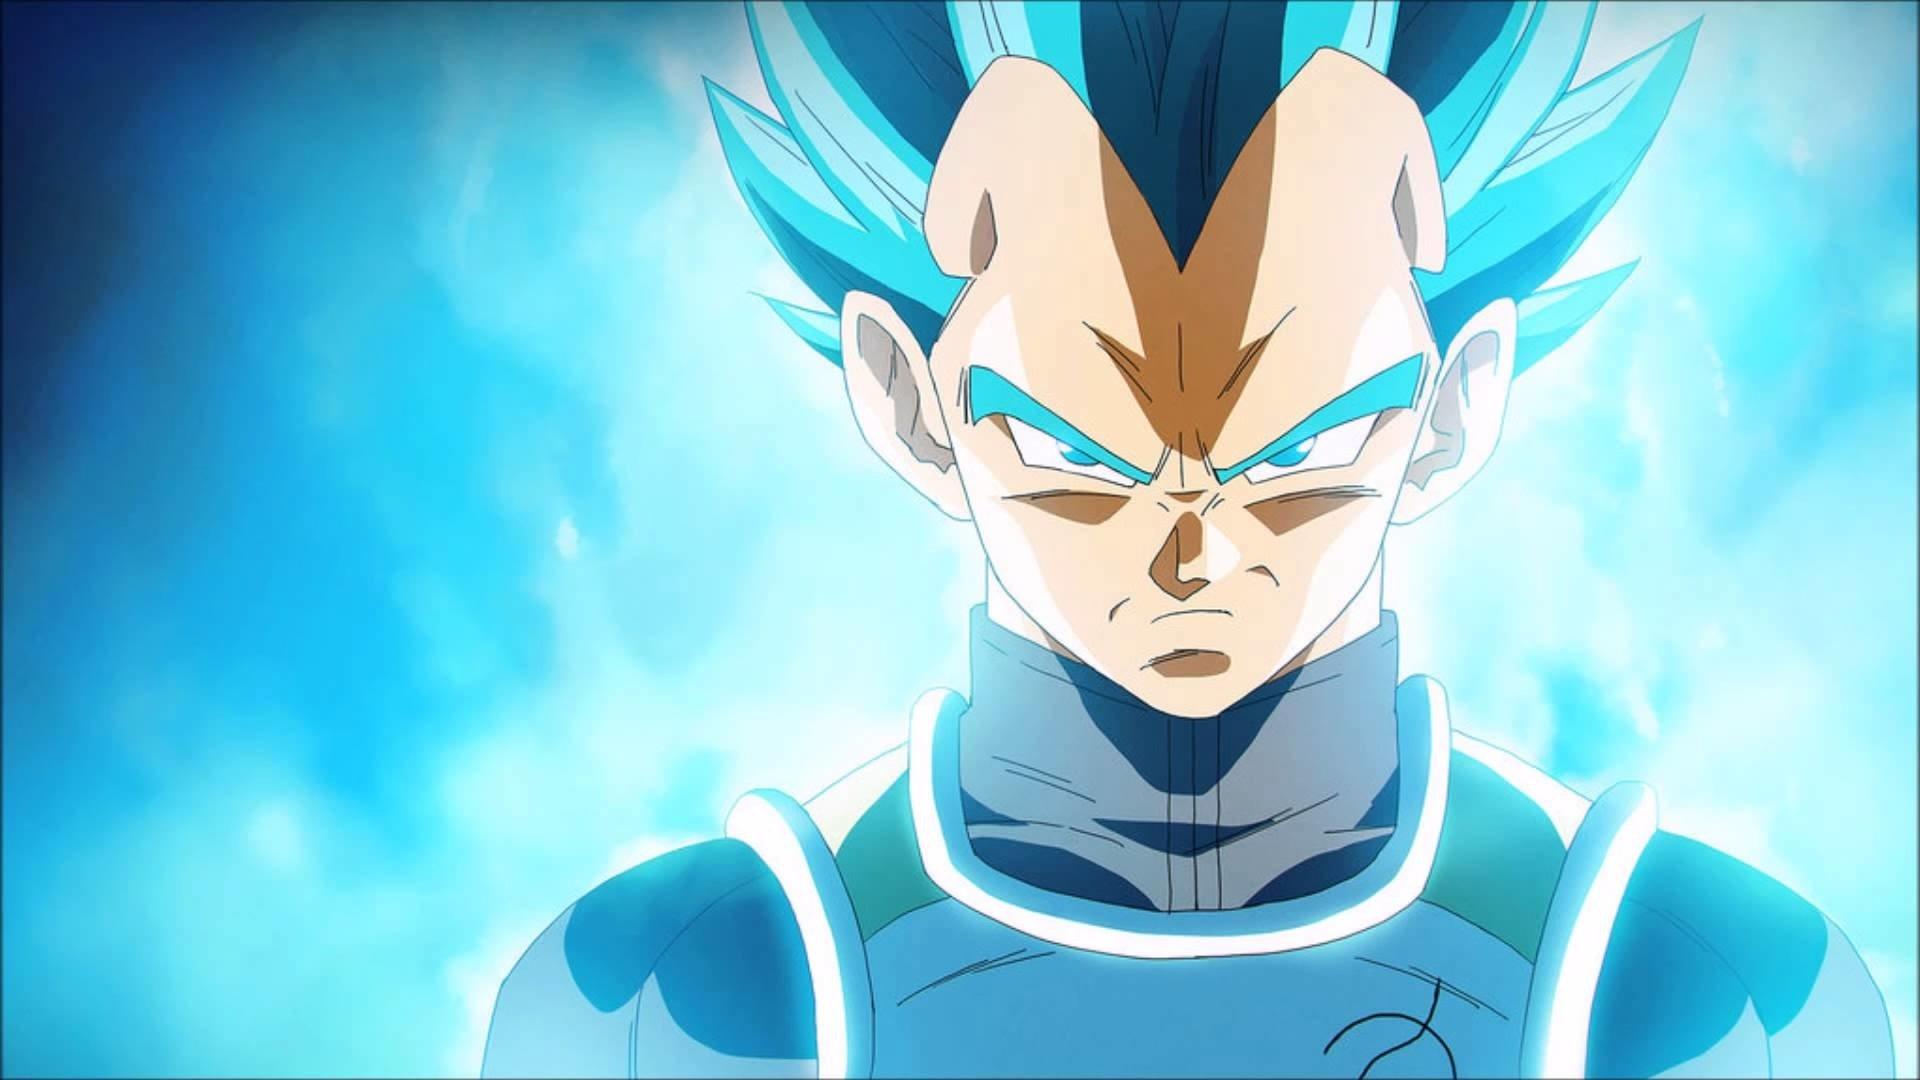 Anime - Dragon Ball Super  Vegeta (Dragon Ball) Wallpaper